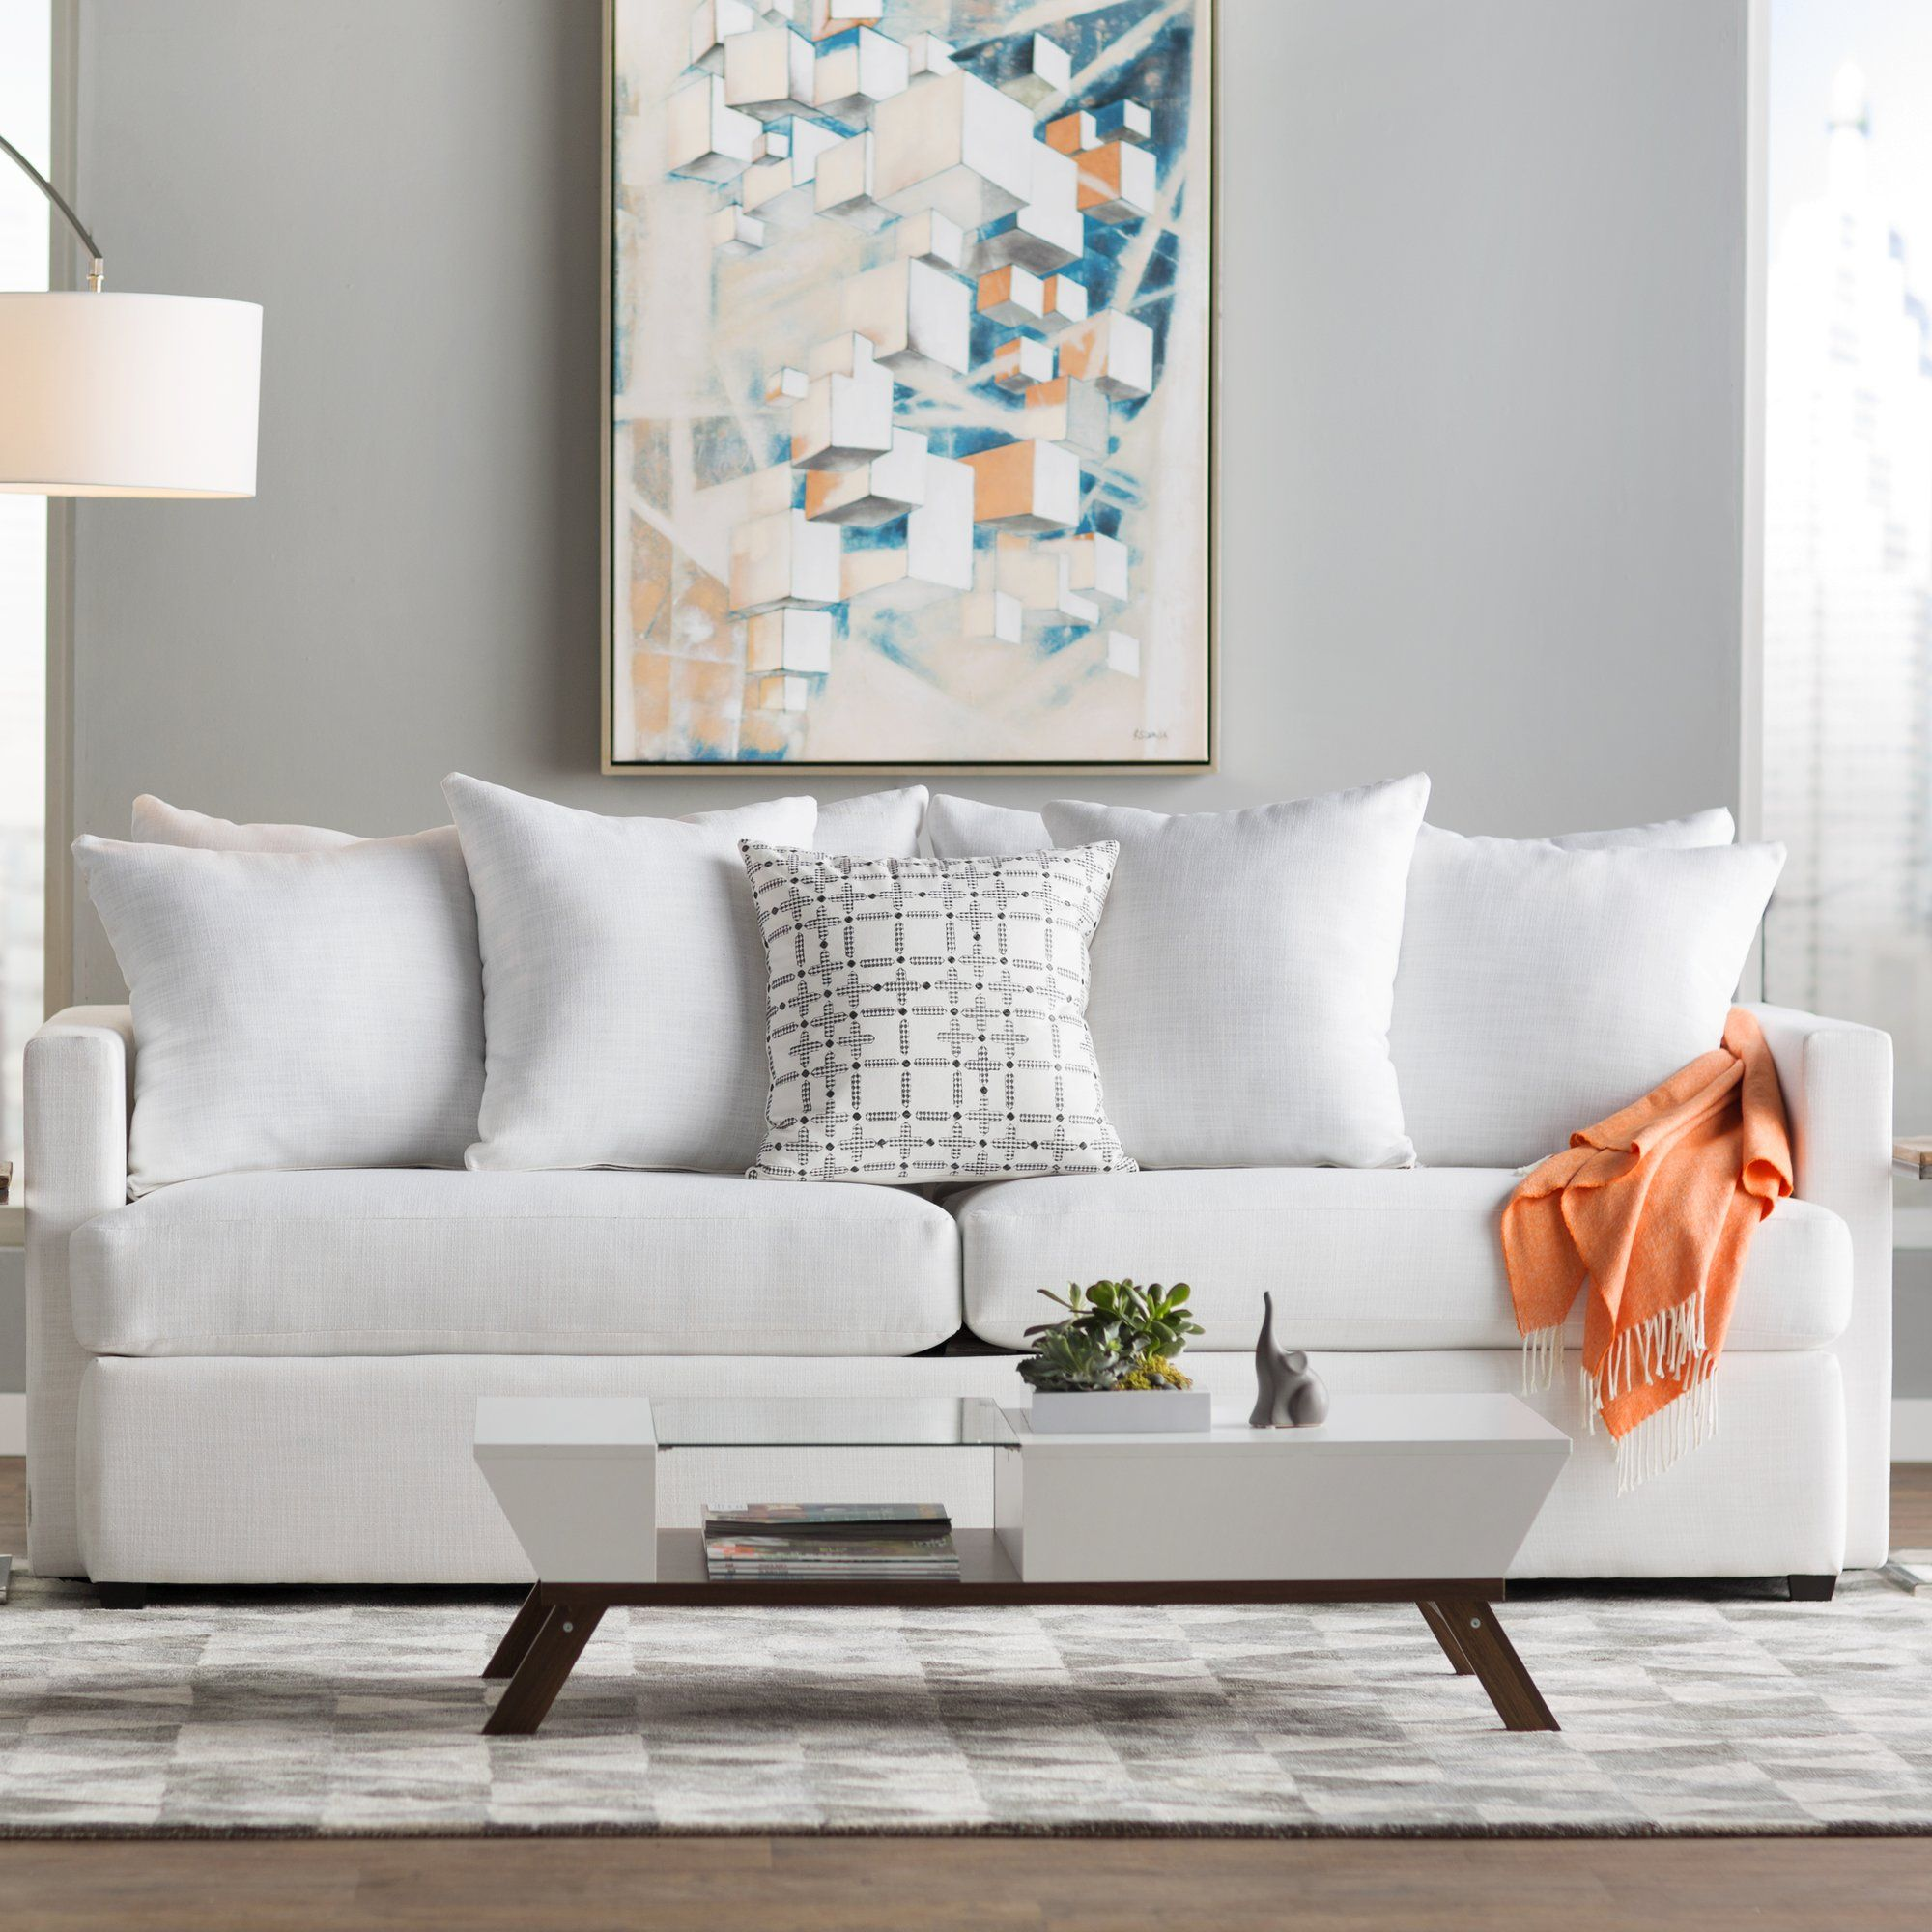 Anchor your parlor or living room ensemble with this understated